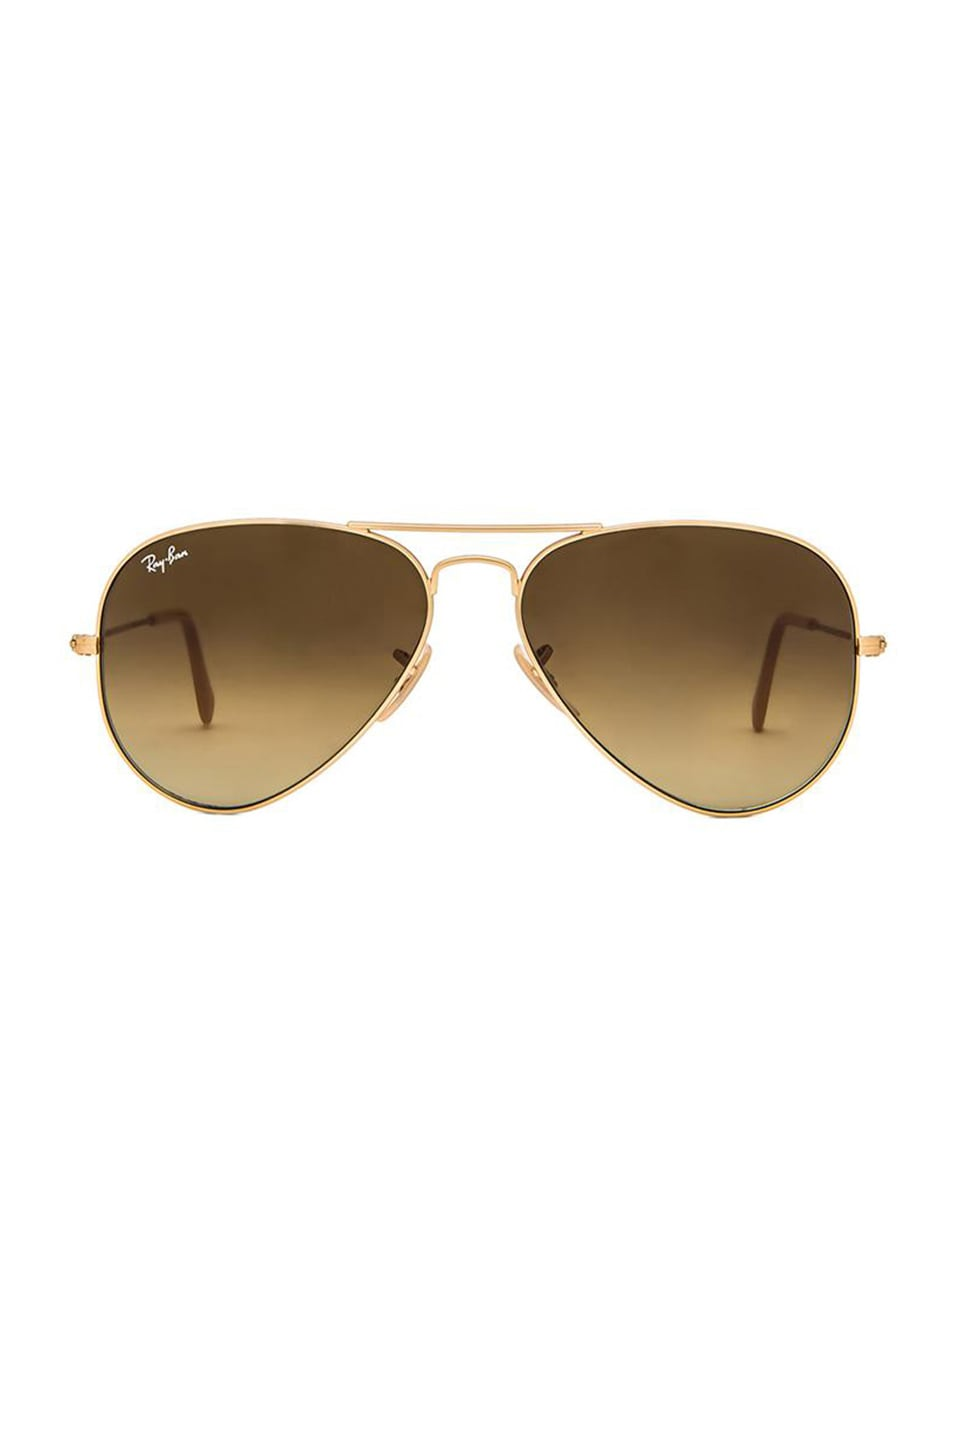 Ray-Ban Aviator Gradient in Gold & Brown Gradient